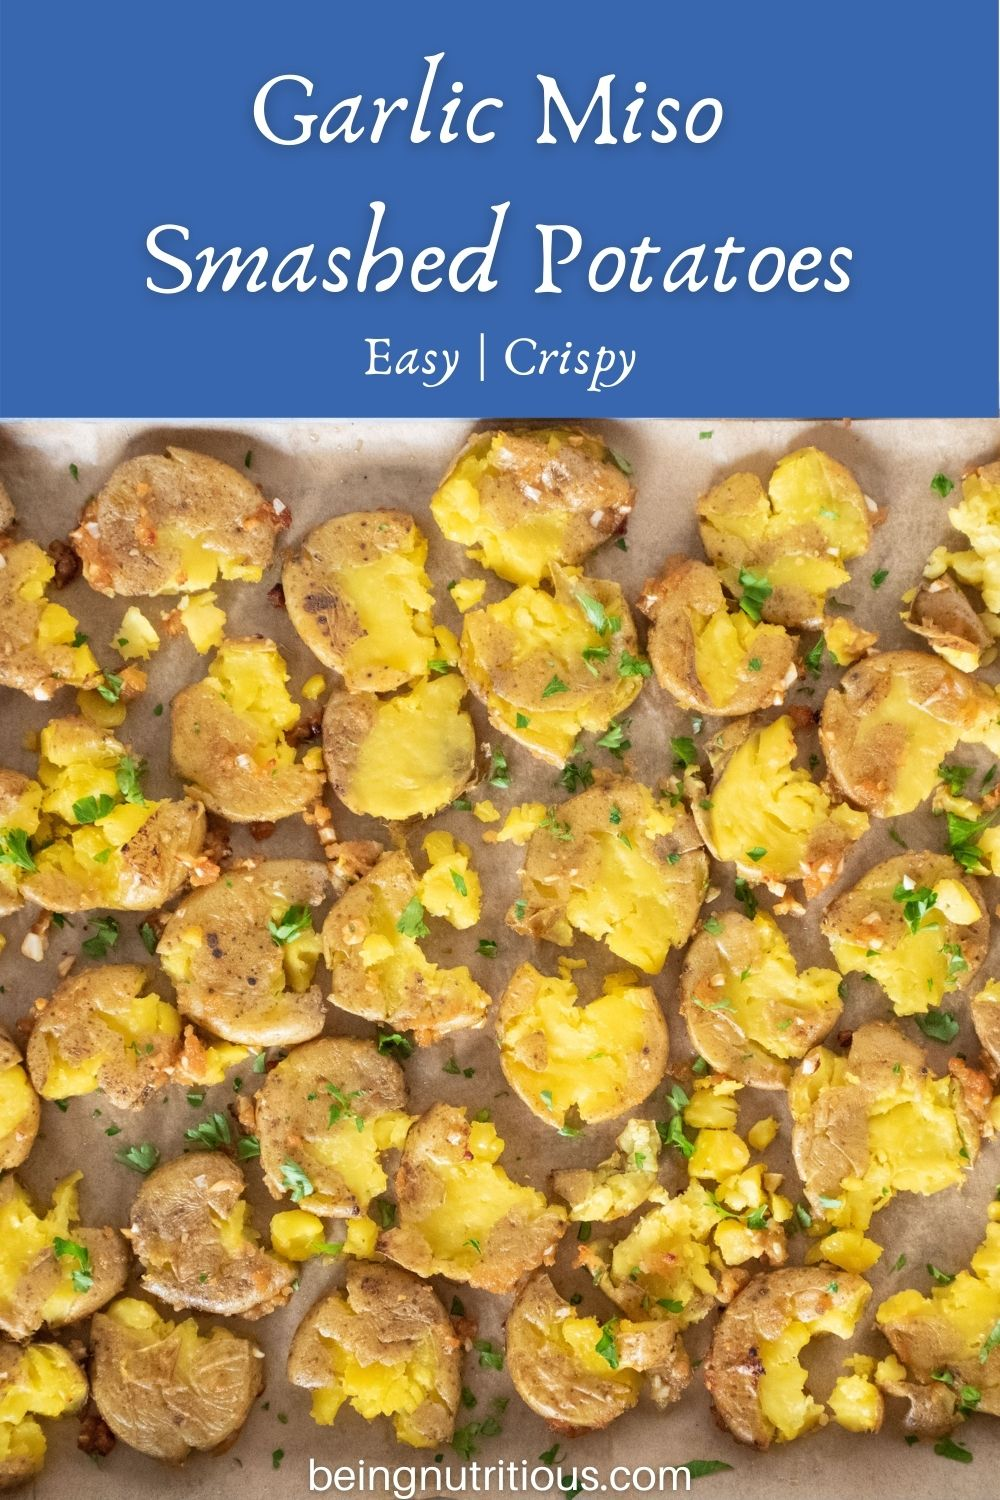 Overhead picture of smashed potatoes on a baking sheet. Text overlay: Garlic Miso Smashed Potatoes; easy, crispy.